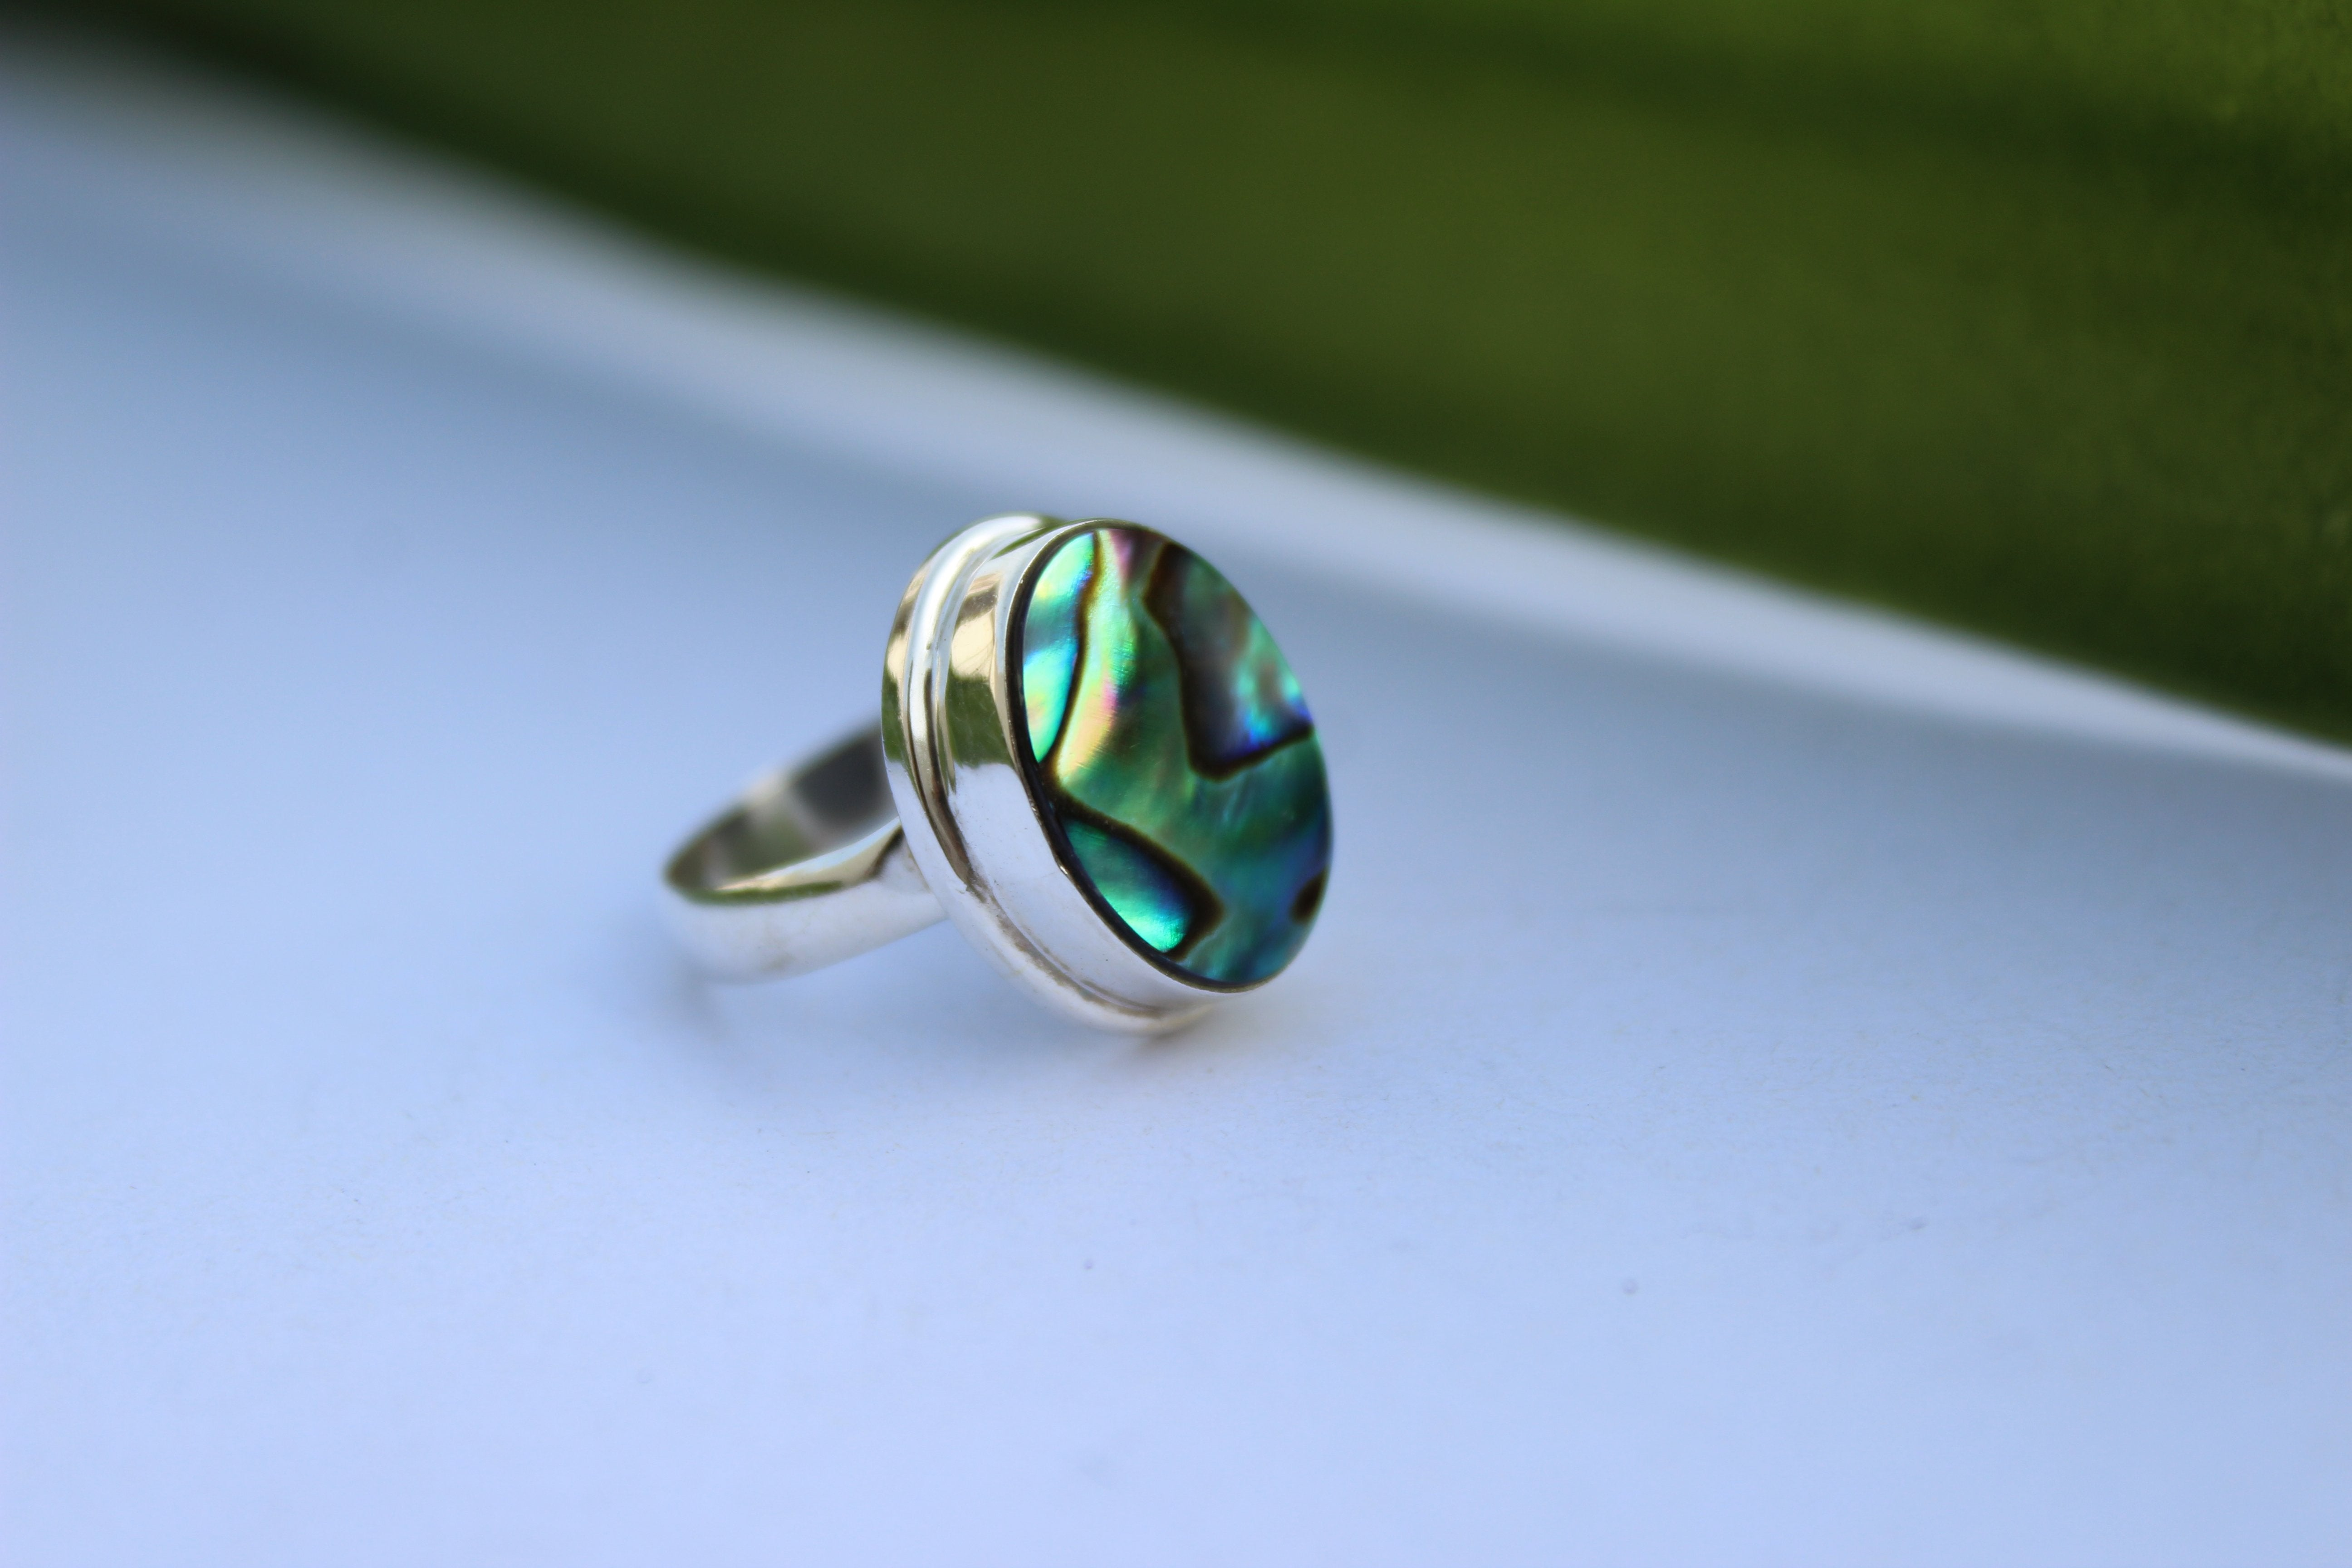 Abalone Shell Ring Sterling Silver AR-1001 - Its Ambra